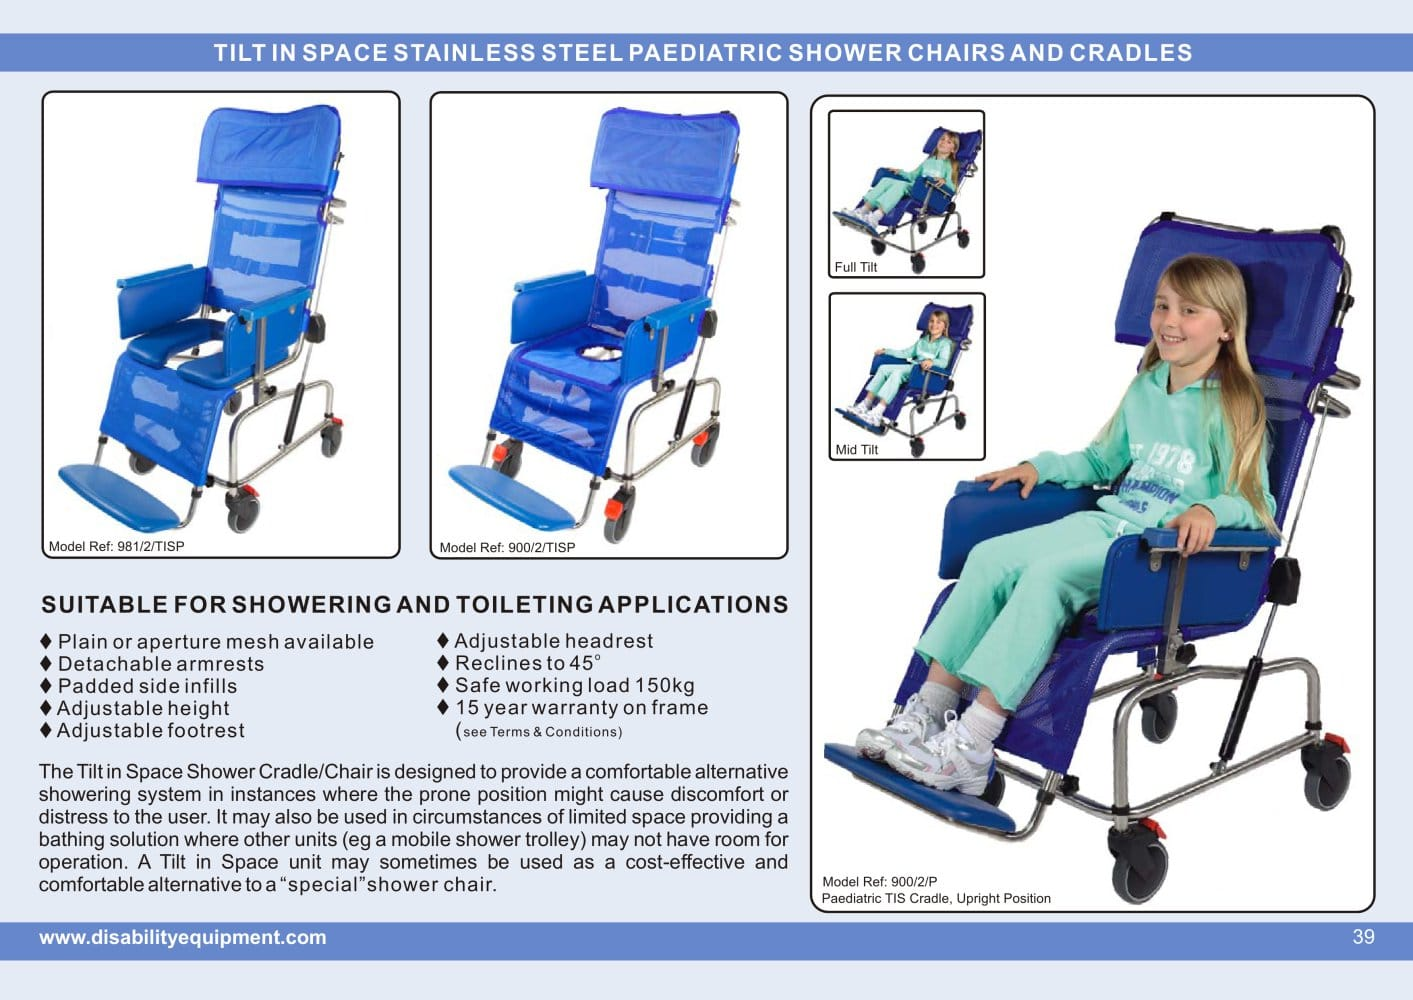 Paediatric Tilt in Space Shower Chairs and Cradles - Spectra Care ...